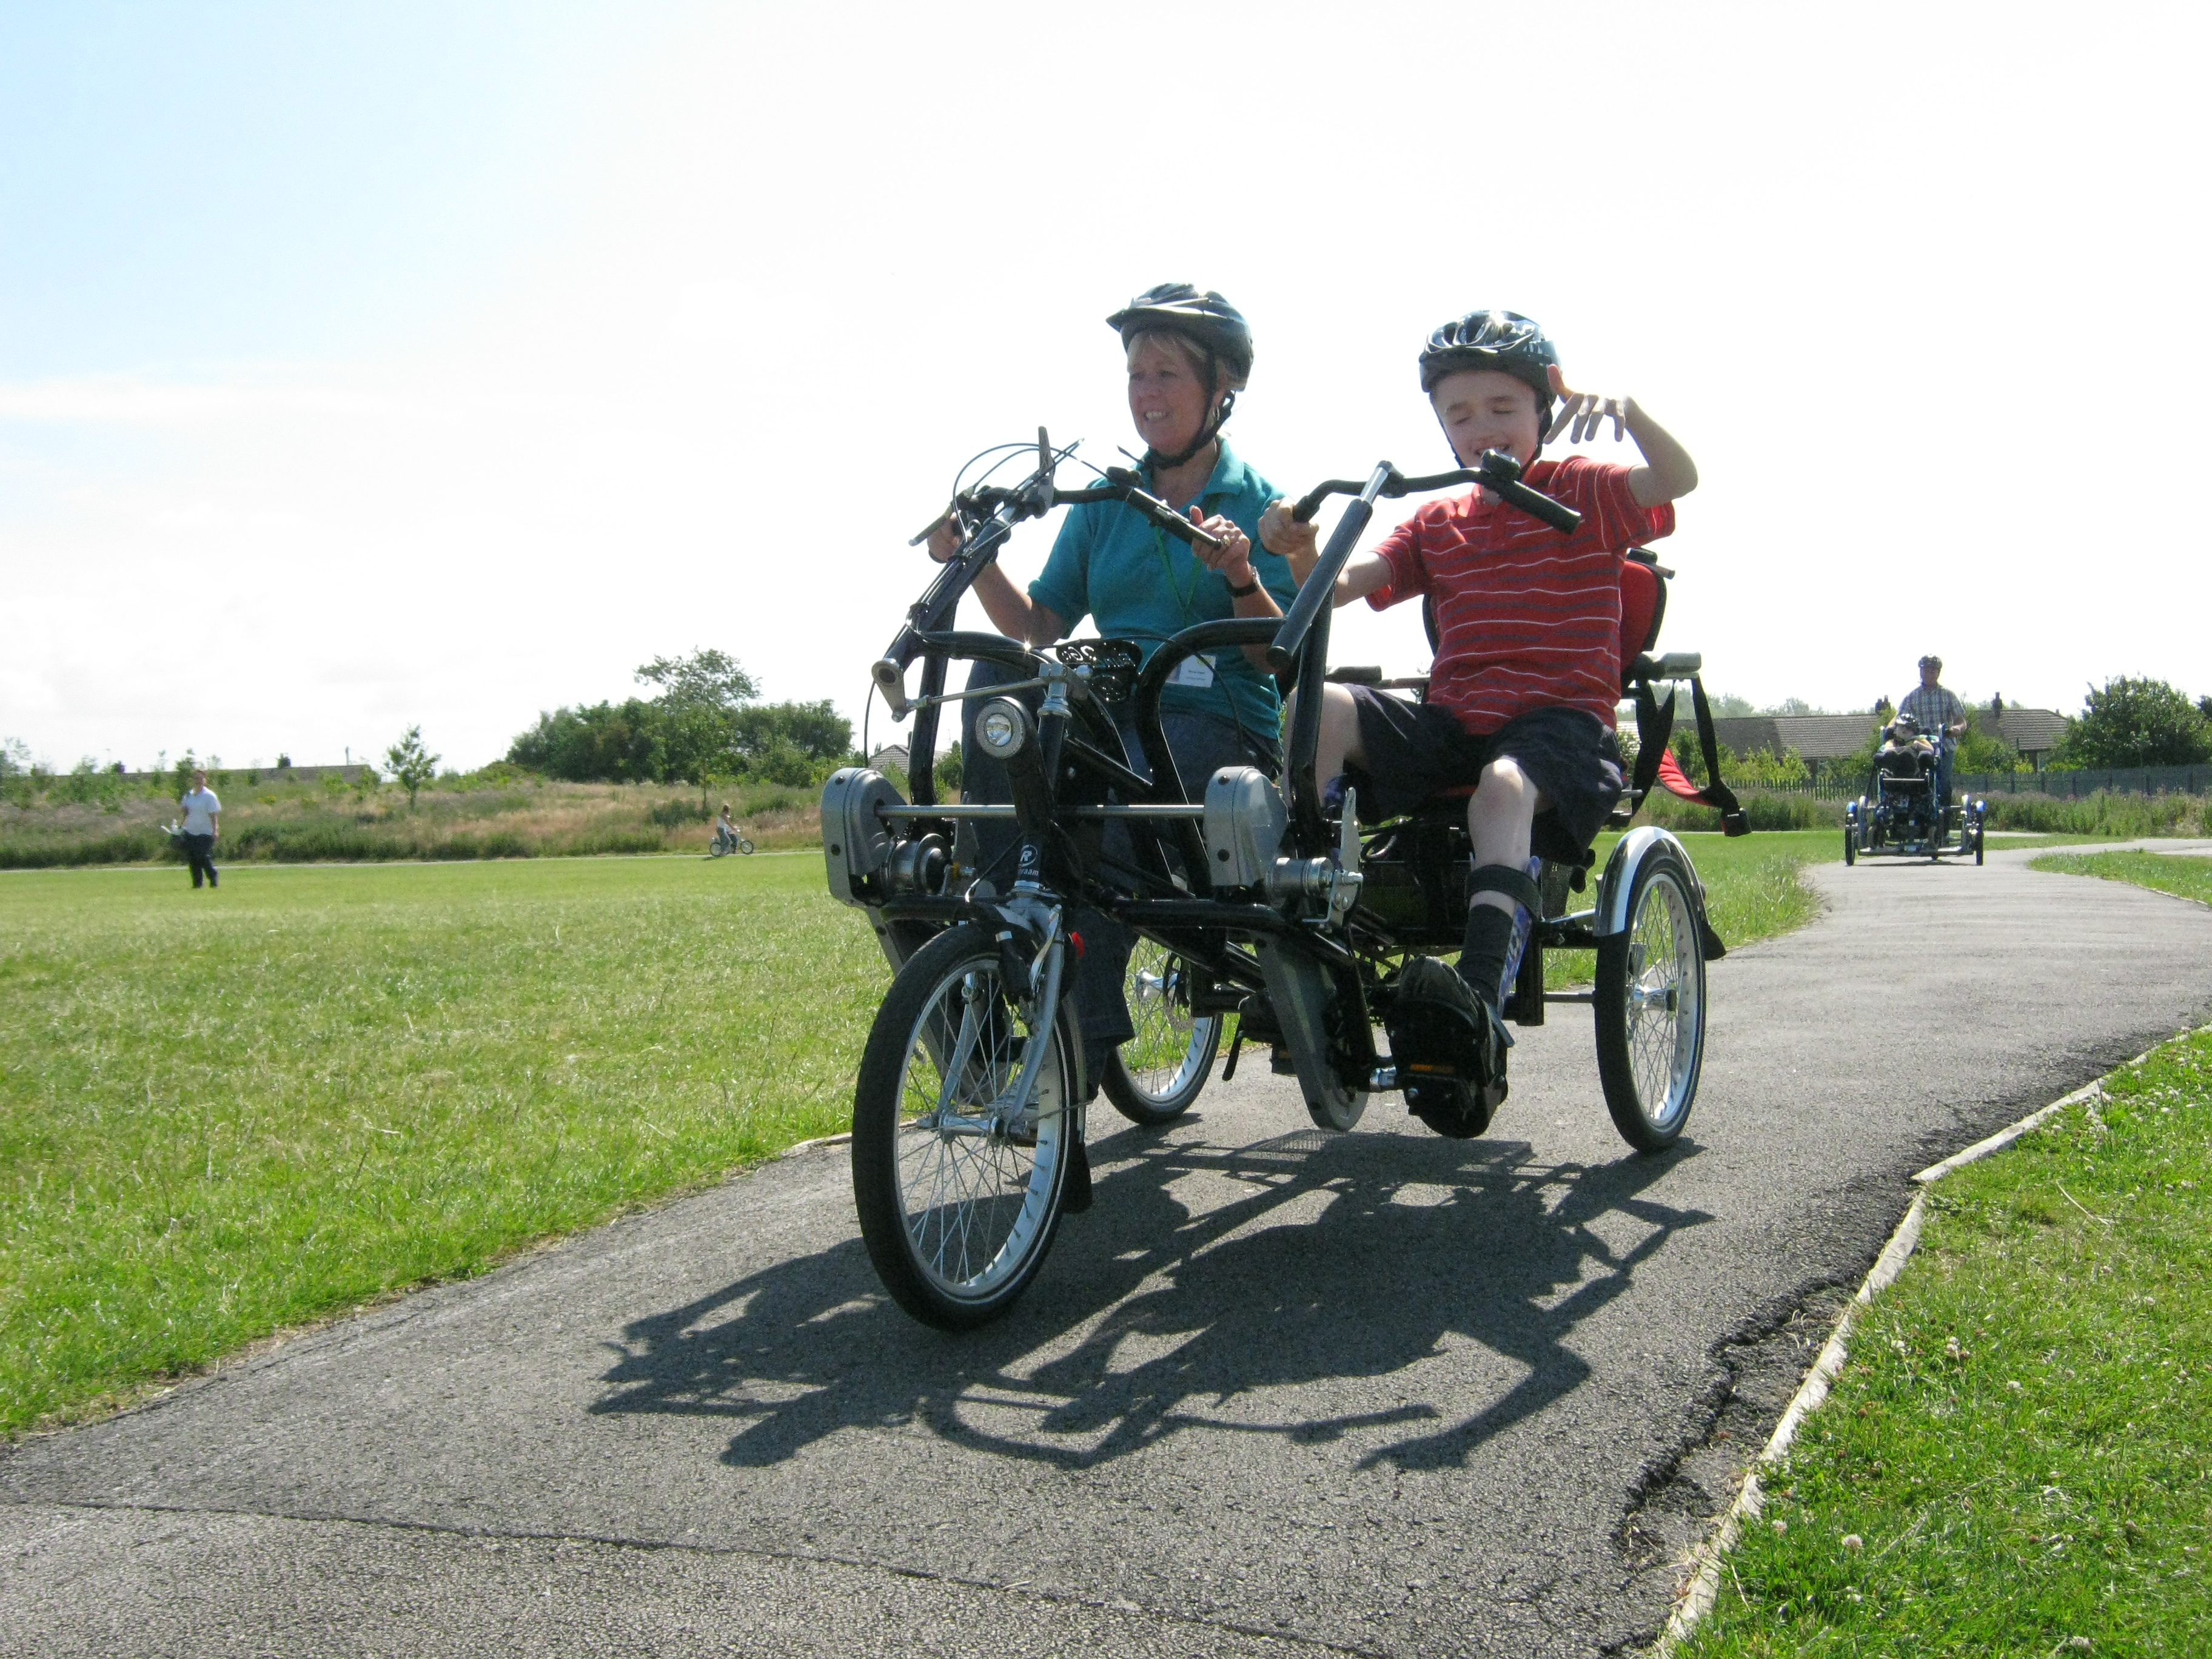 Adapted bike ride with parent and child